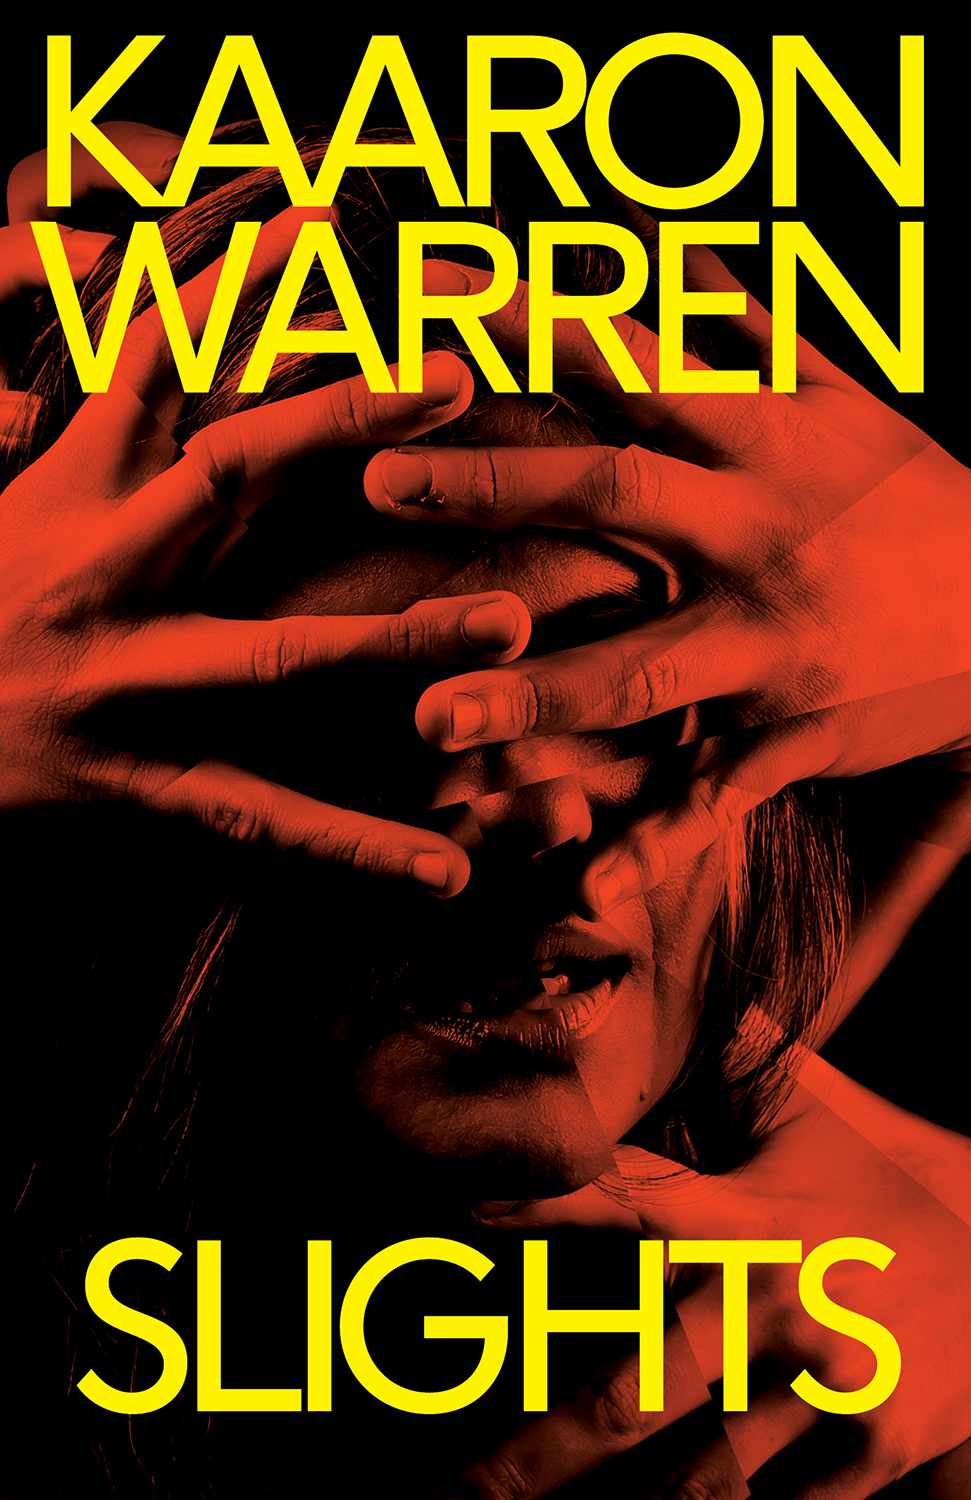 A quick interview with Kaaron Warren: Horror writer